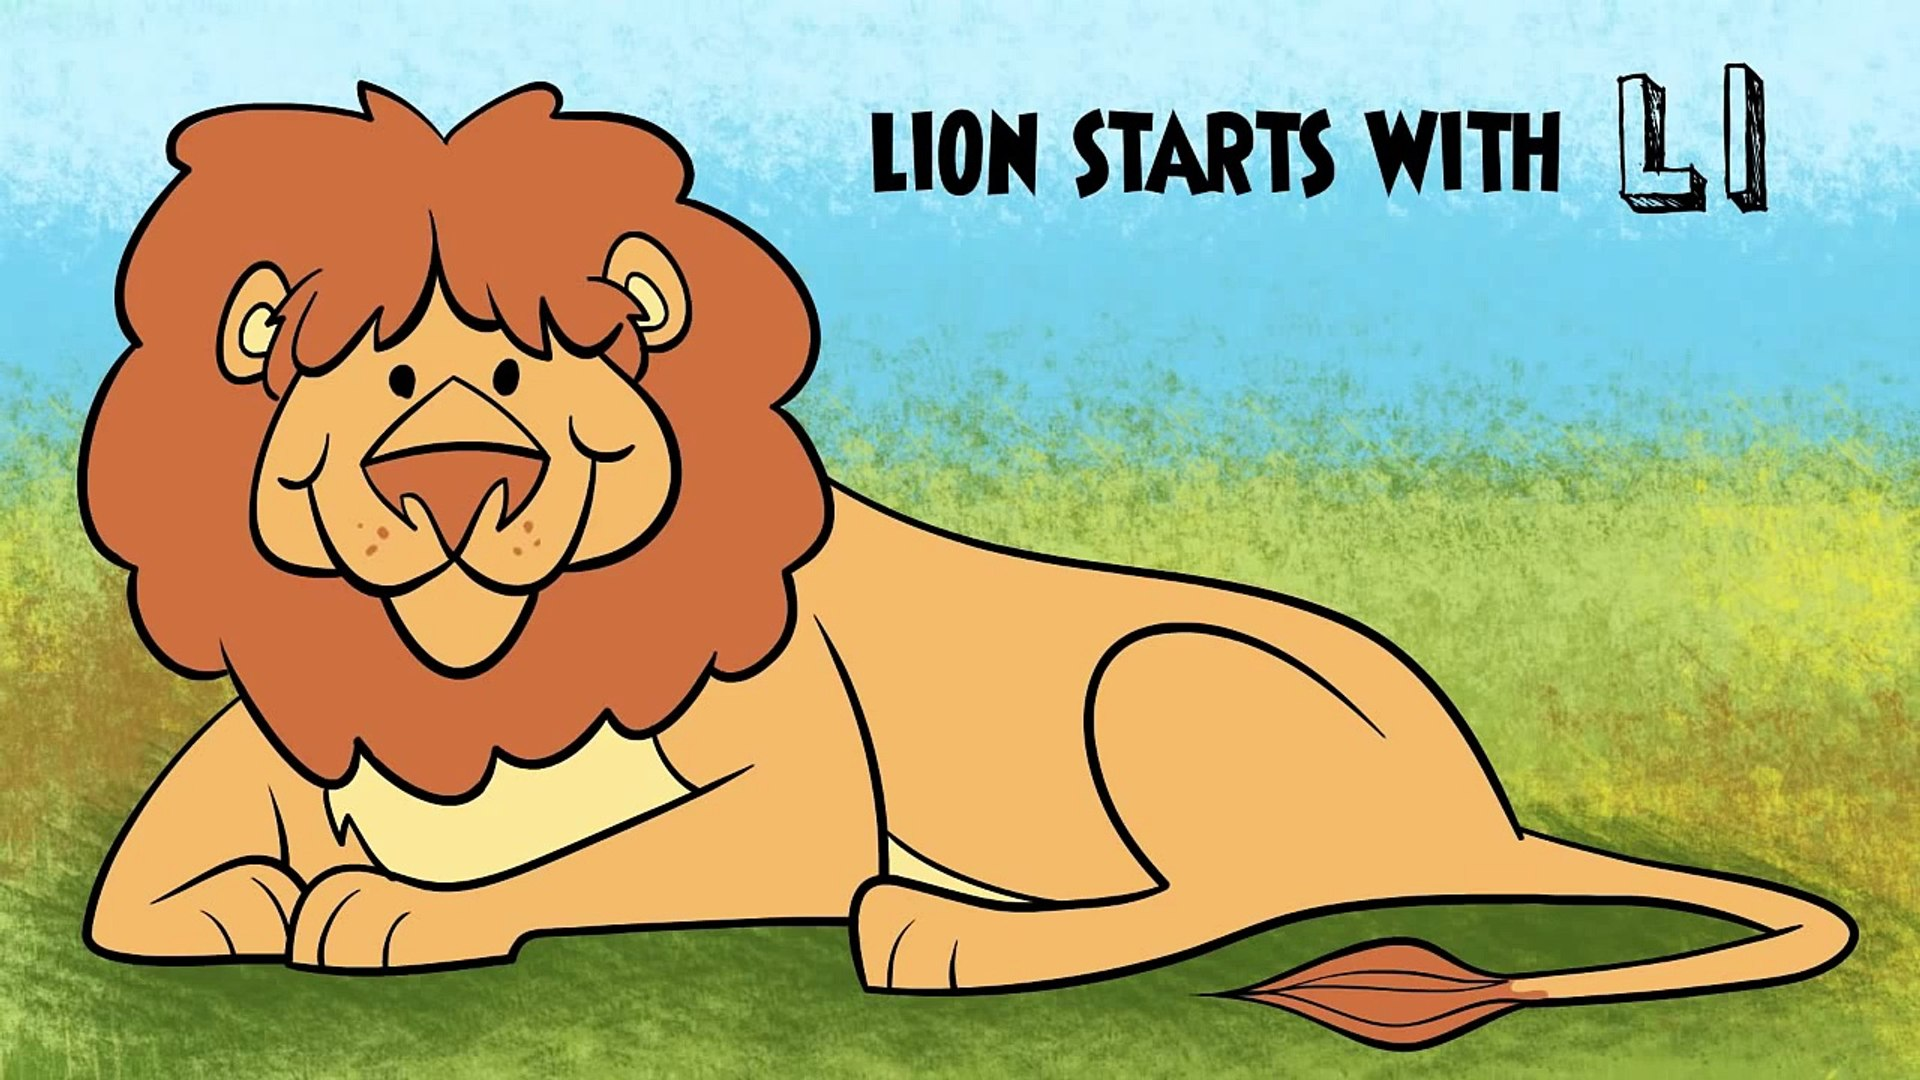 Awesome The Learning Station Abc Phonics Song Lyrics wallpapers to download for free greenvirals